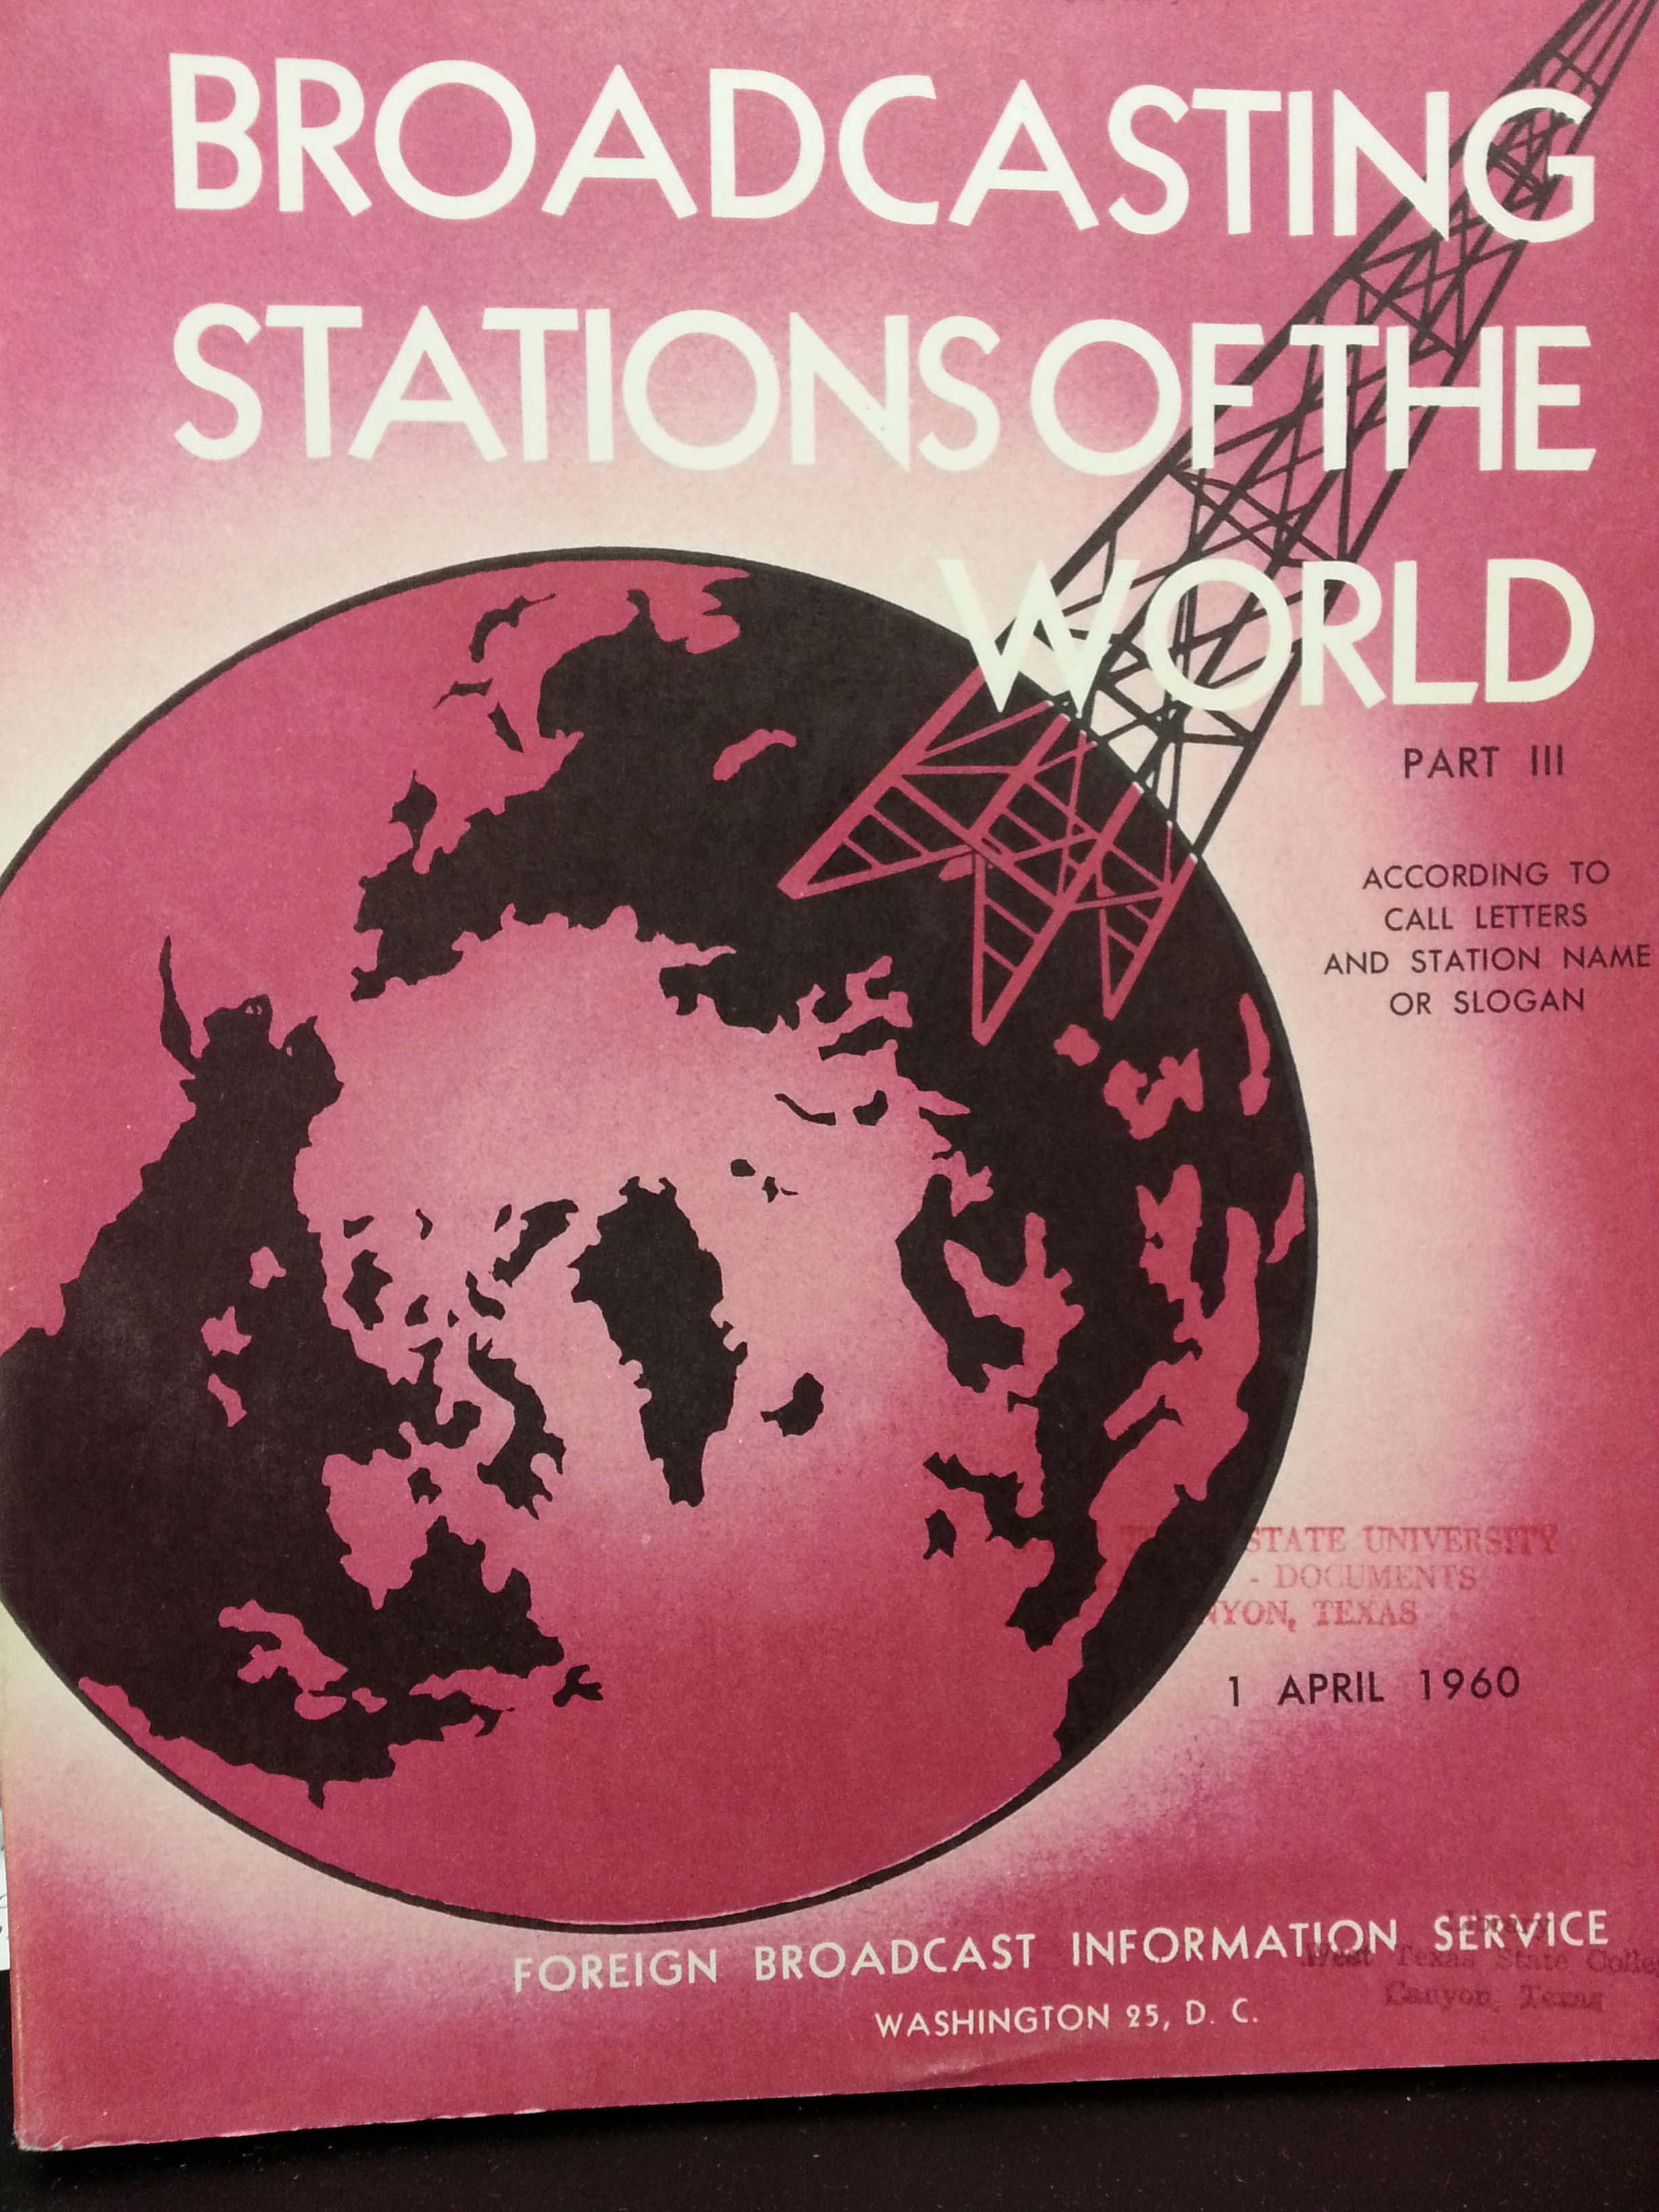 Broadcasting stations of the world, 1960